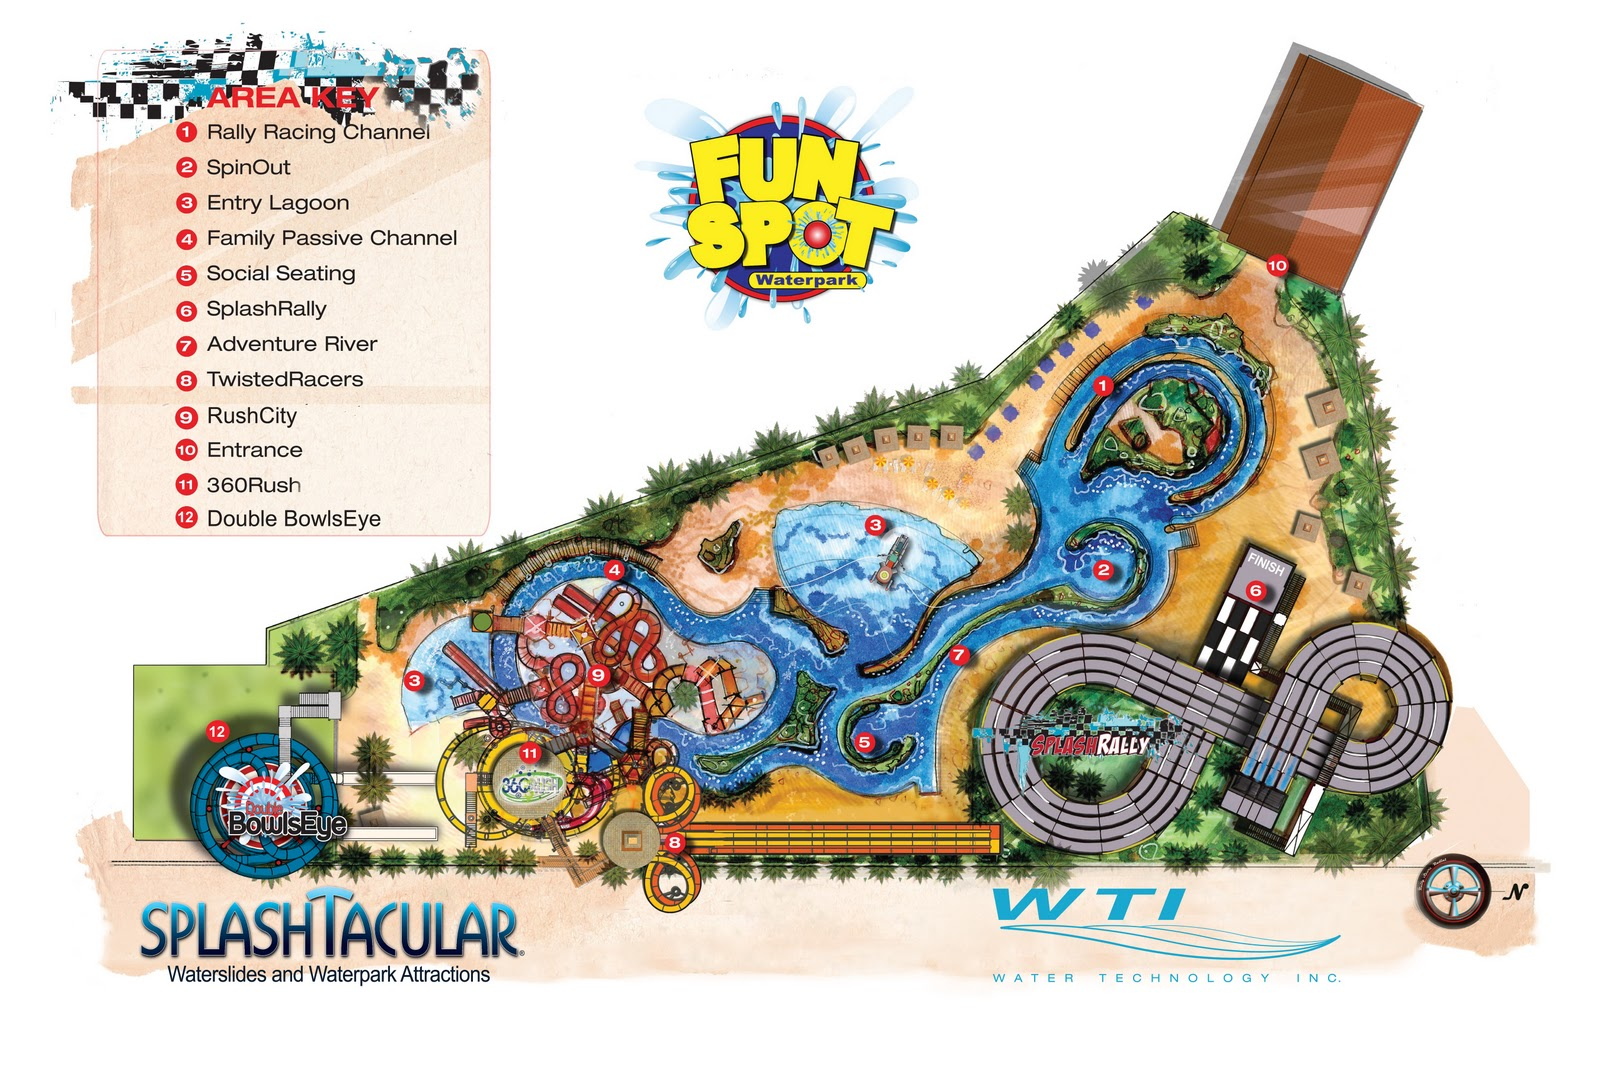 Inpark Magazine Orlando Fun Spot To Add Waterpark